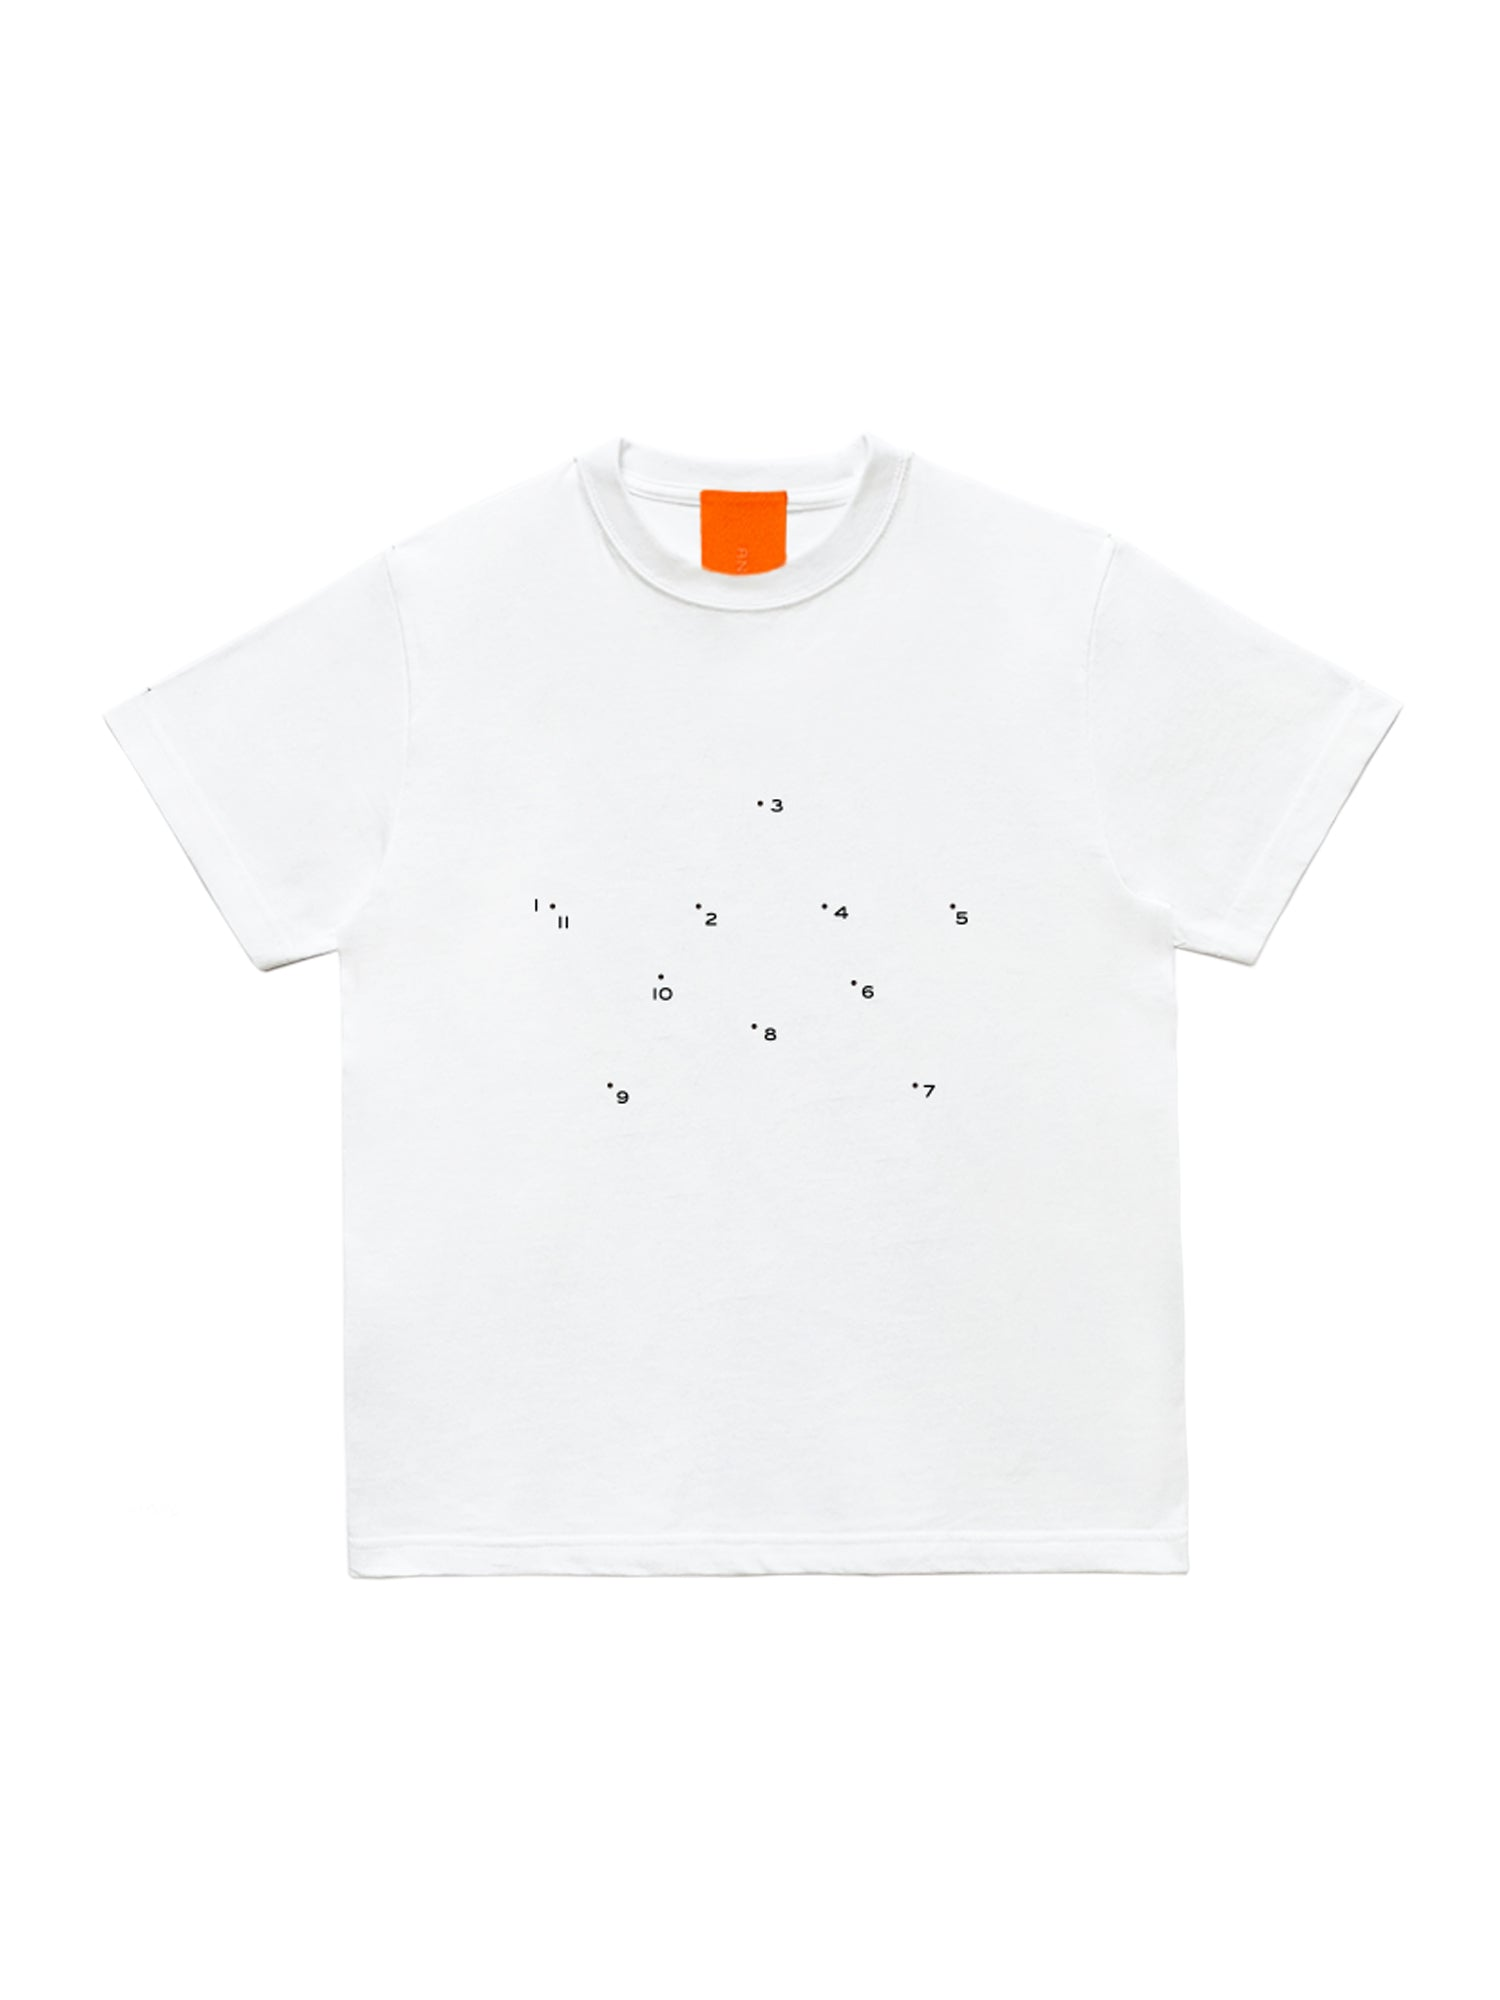 [ HAPPY CHILDREN'S DAY ] THE STAR COME TO THE LIGHT T-SHIRT